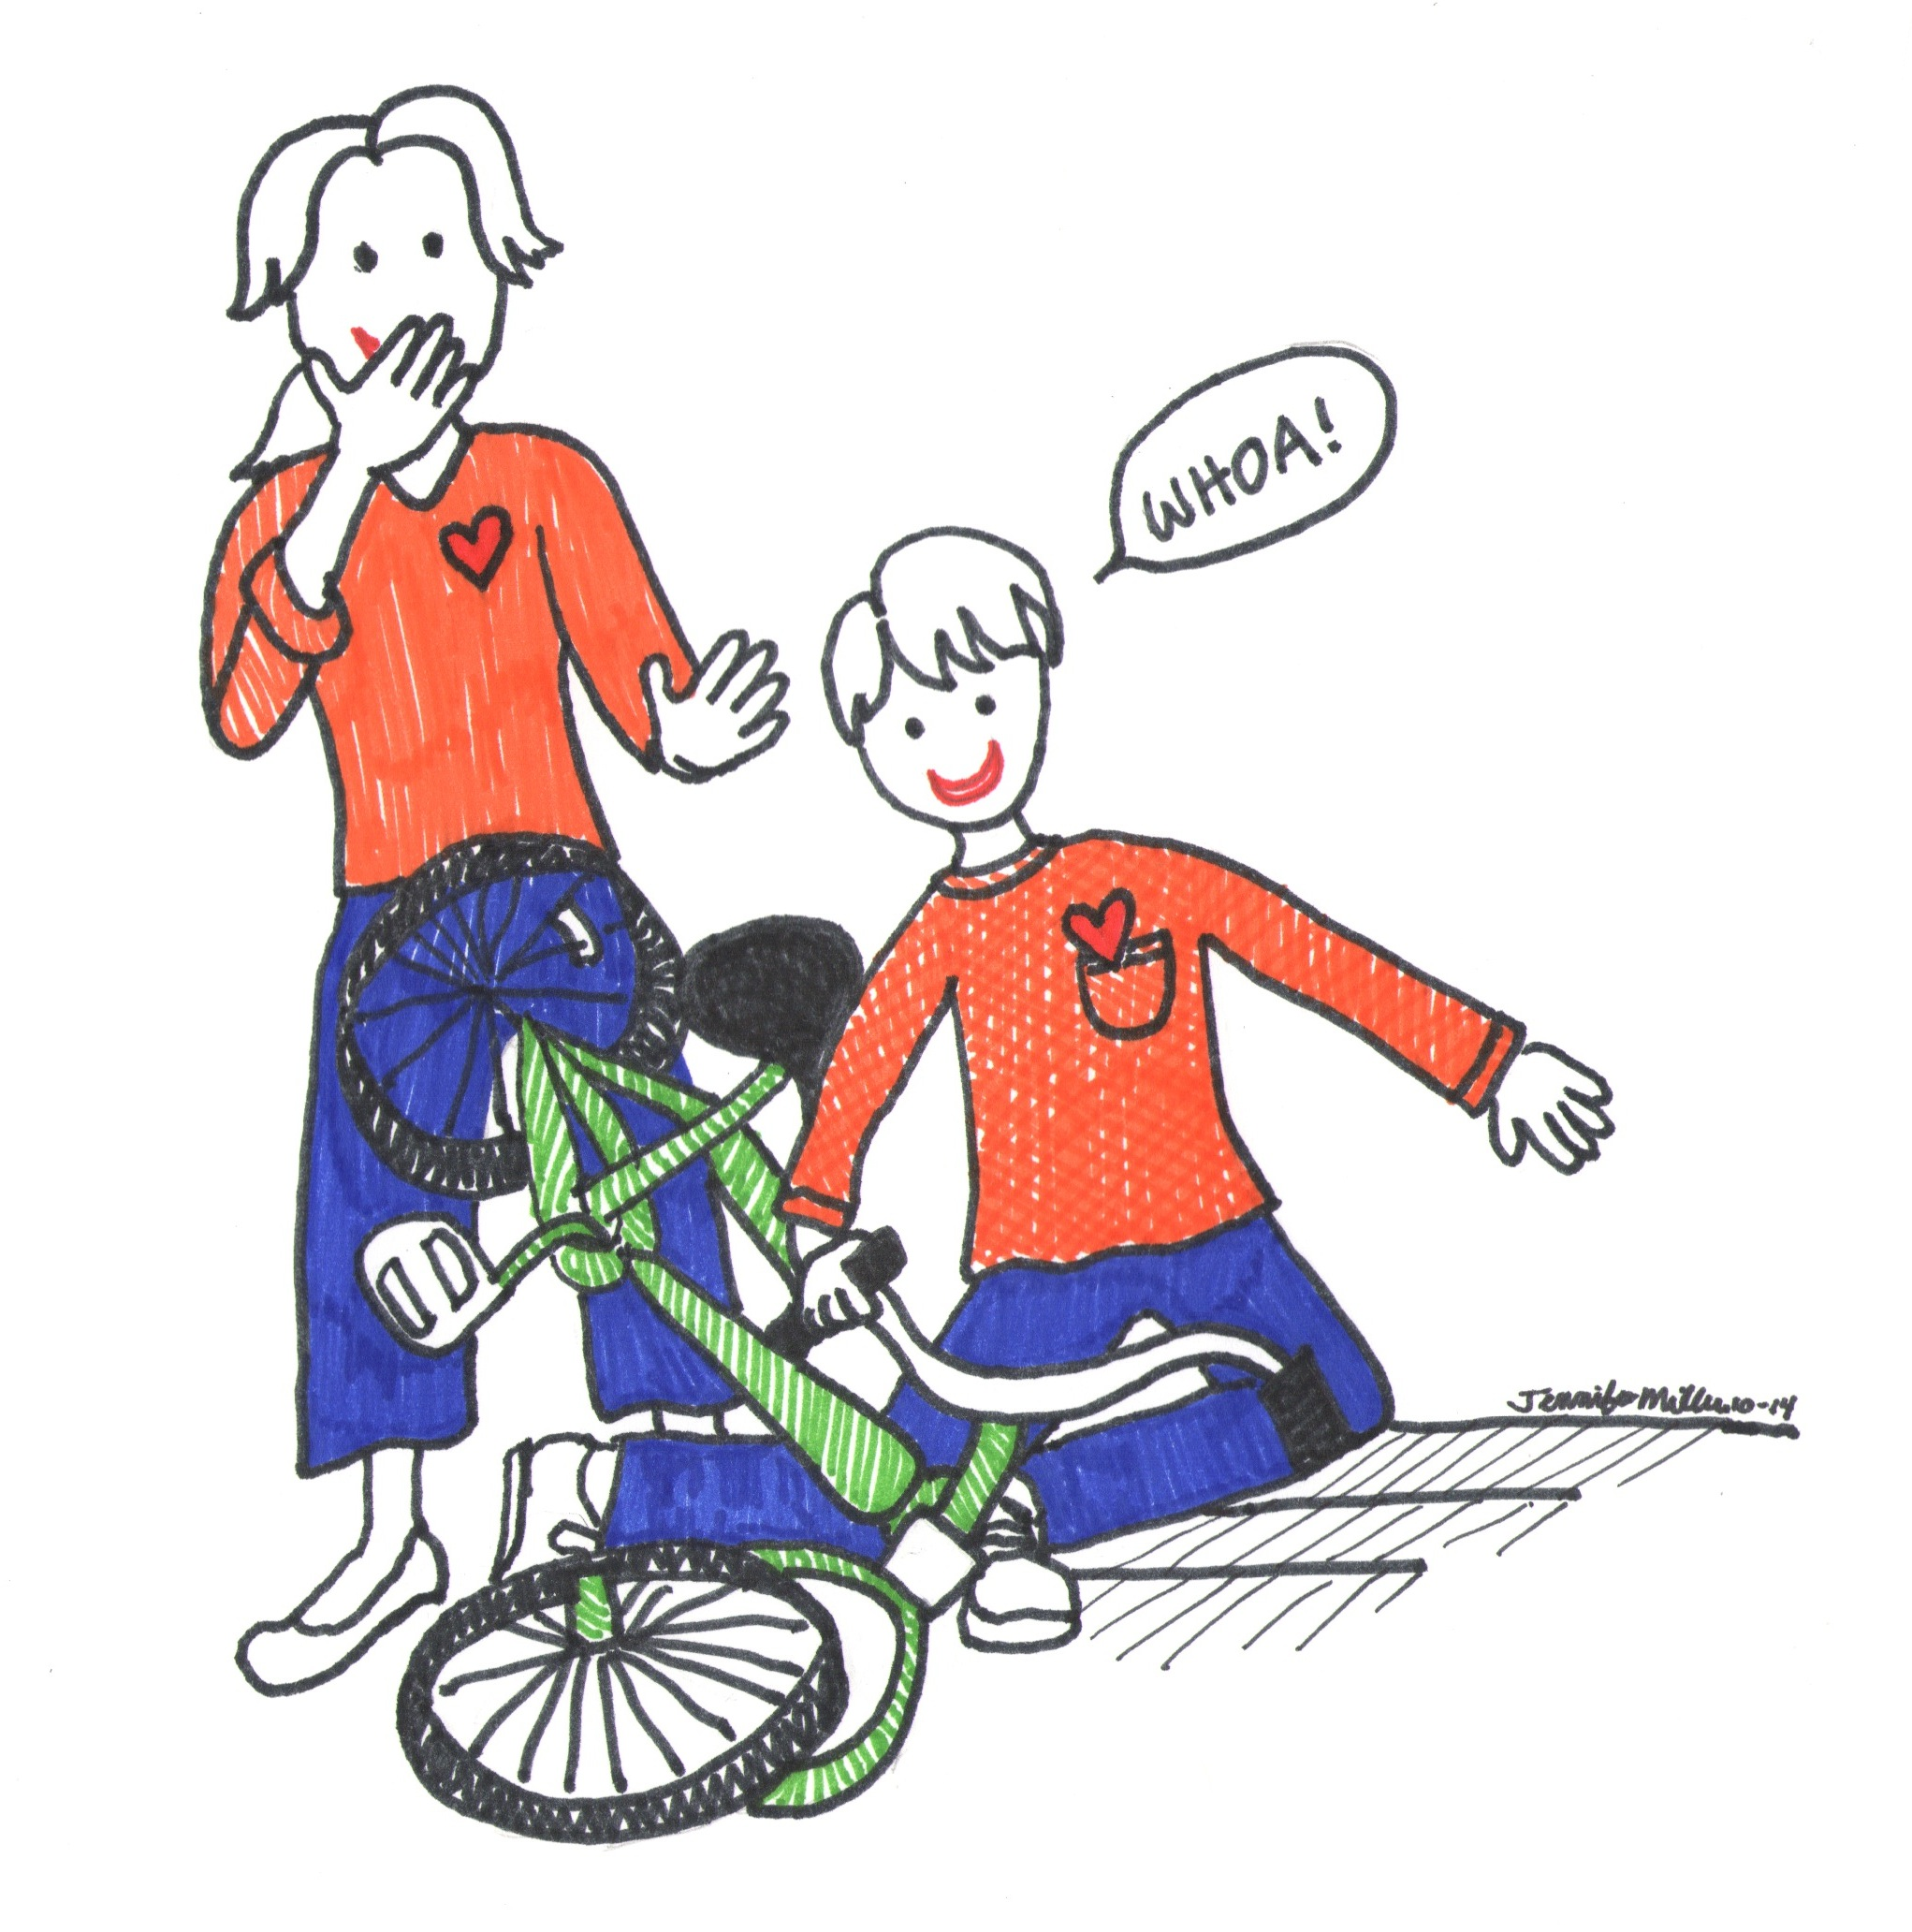 essay on learning to ride a bike My horrible experience of learning how to ride a bike essay 1645 words | 7 pages was only ten years old when i began learning how to ride a bike which wasn't easy.